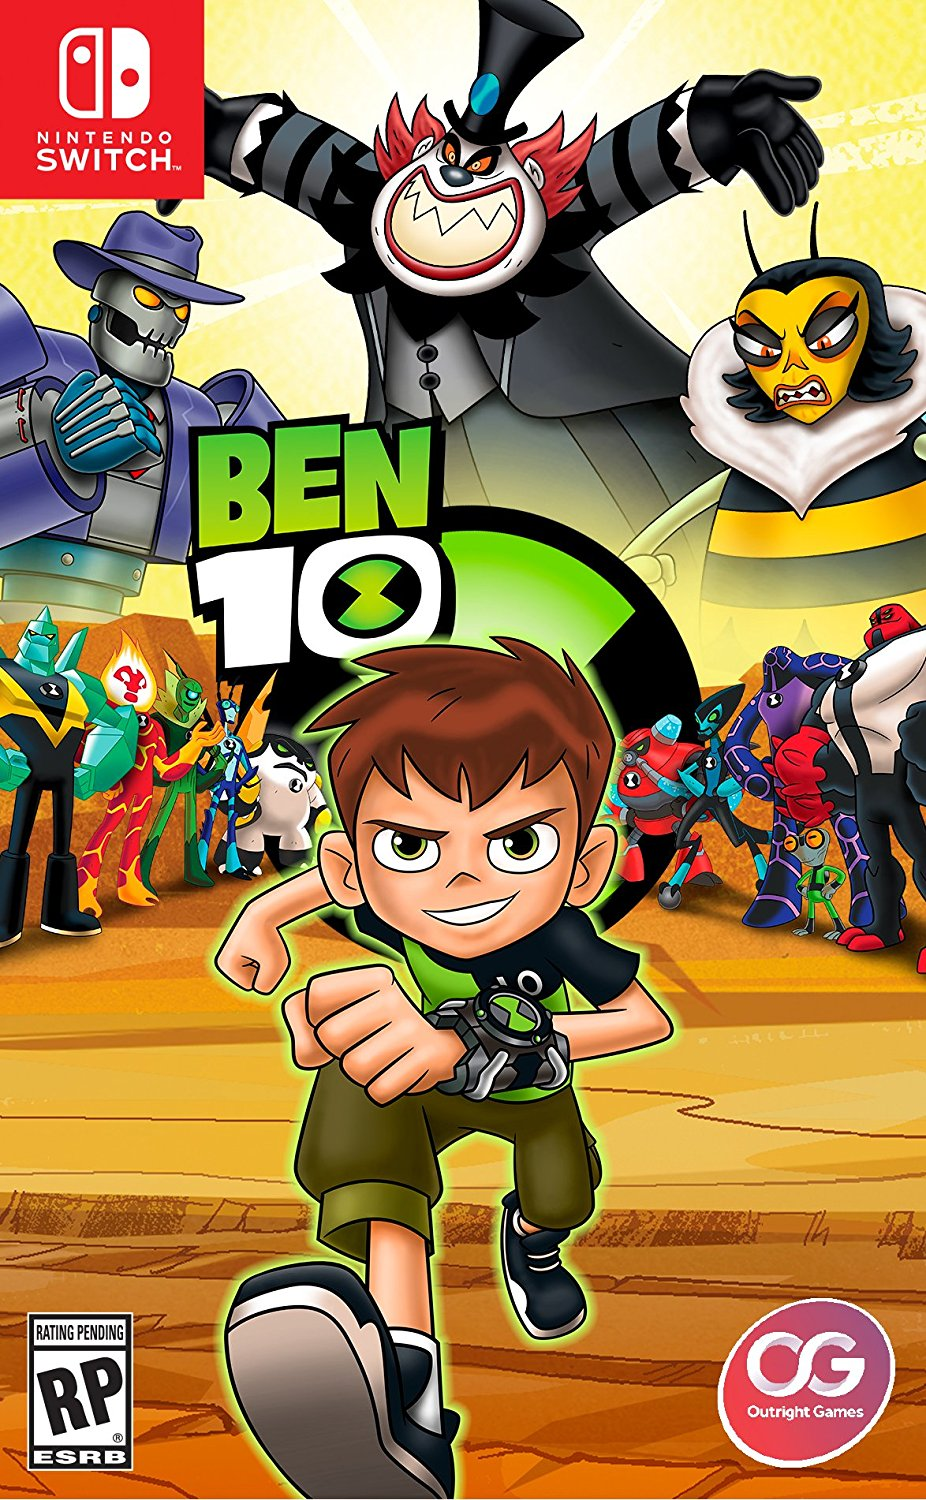 Ben 10 ben 10 nintendo switch edition voltagebd Gallery